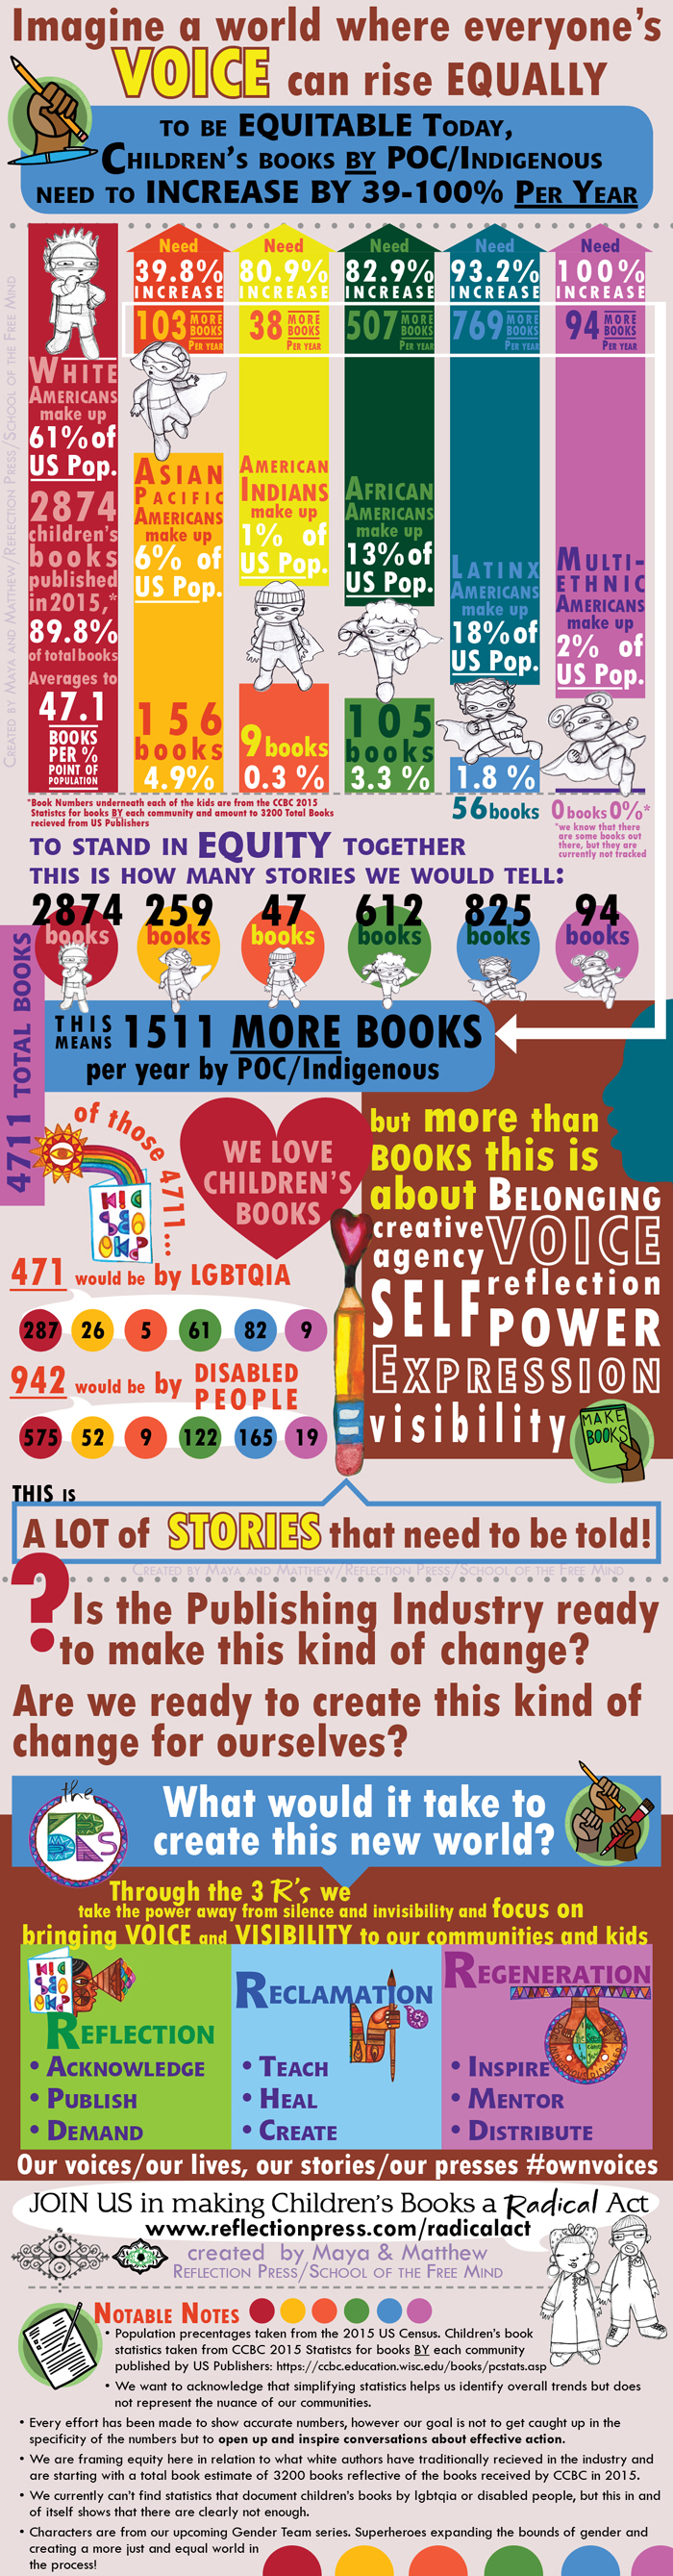 Children's Books needed to be equitable - infographic